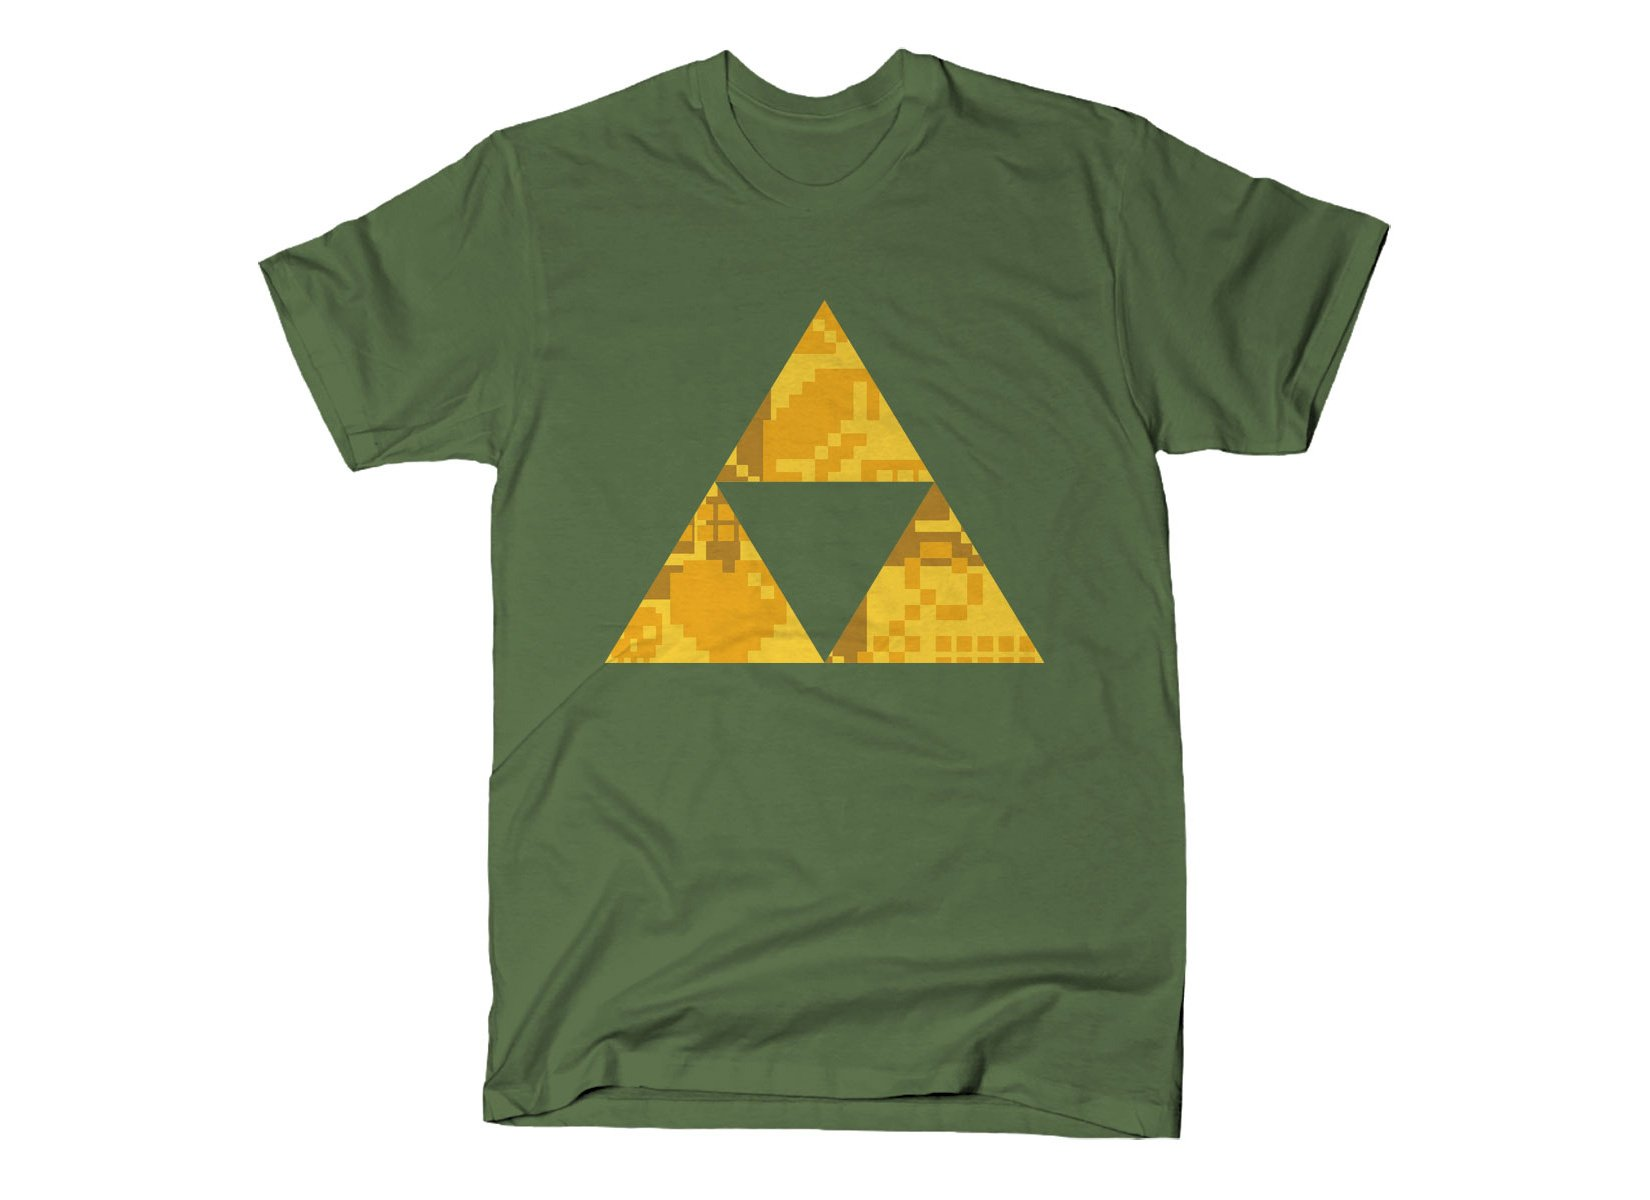 Triforce on Mens T-Shirt